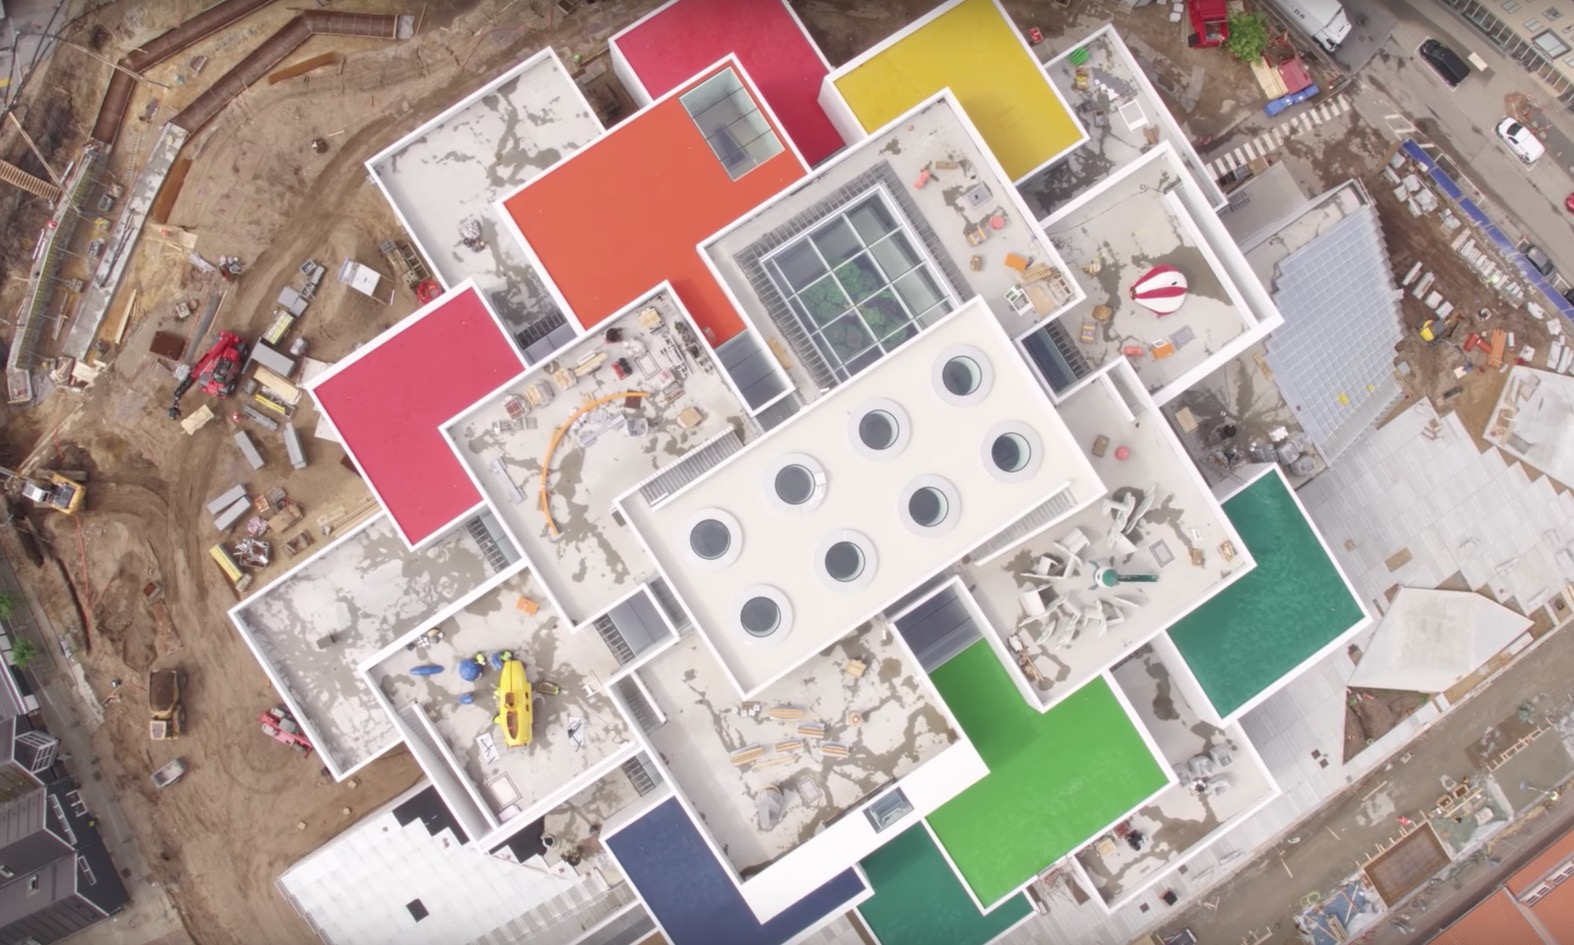 Amazing Drone Footage of the LEGO House in Denmark